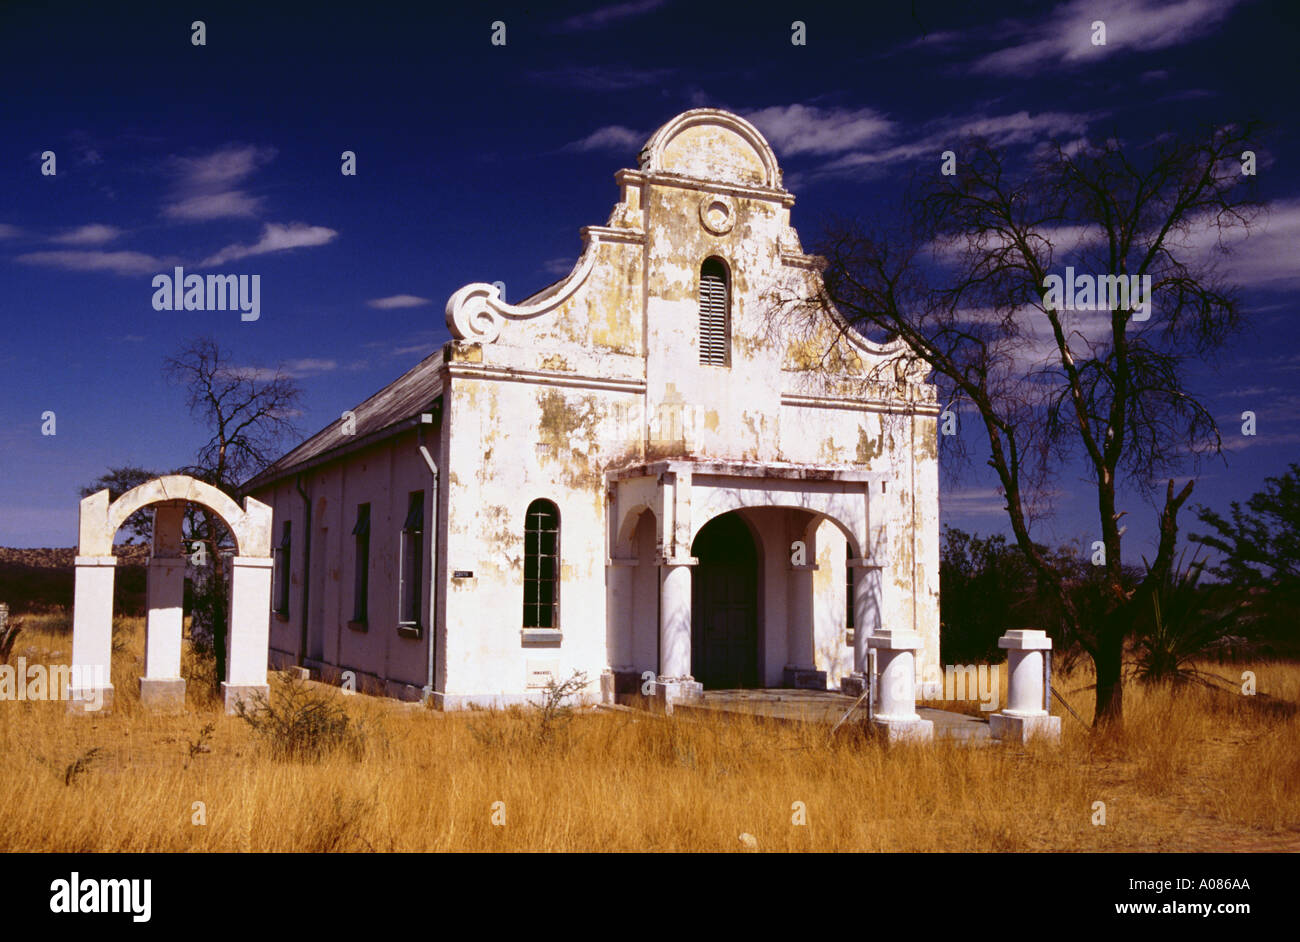 Namibia ghosttown Kalkfeld old mission church ruin fall into disrepair old ancient historic sight - Stock Image